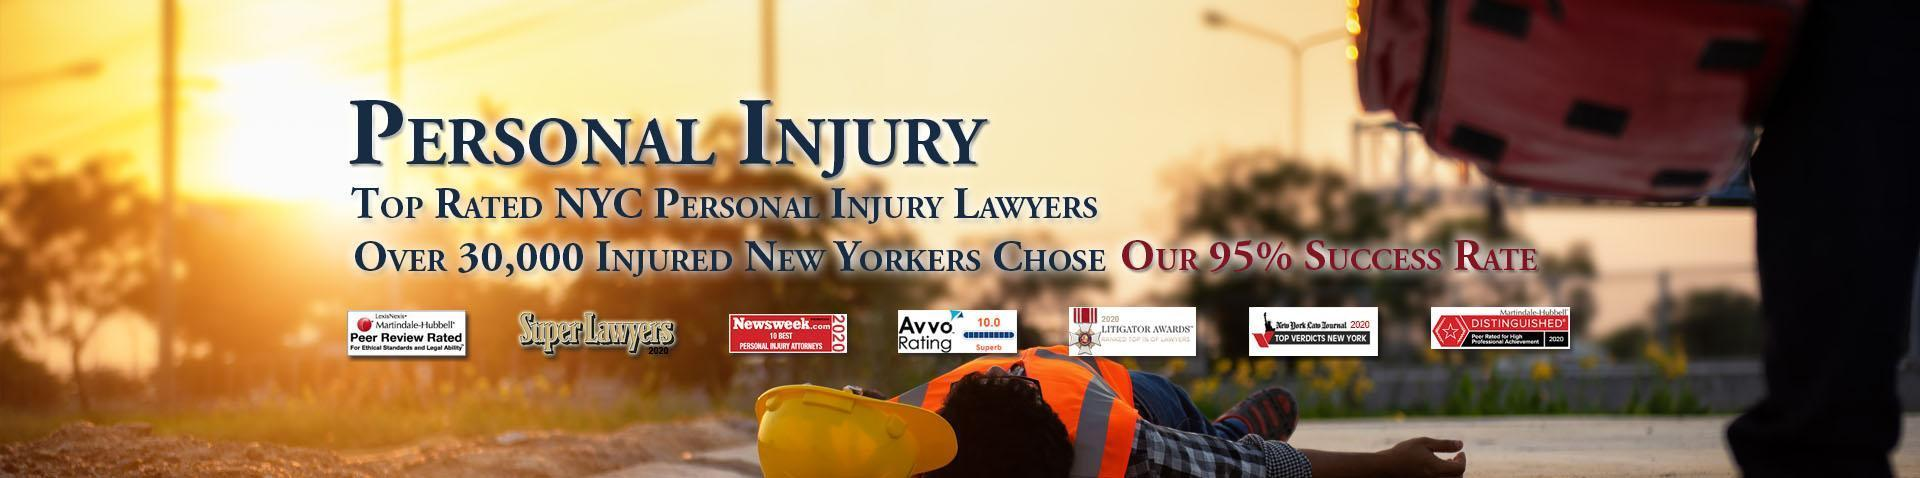 Personal Injury Banner